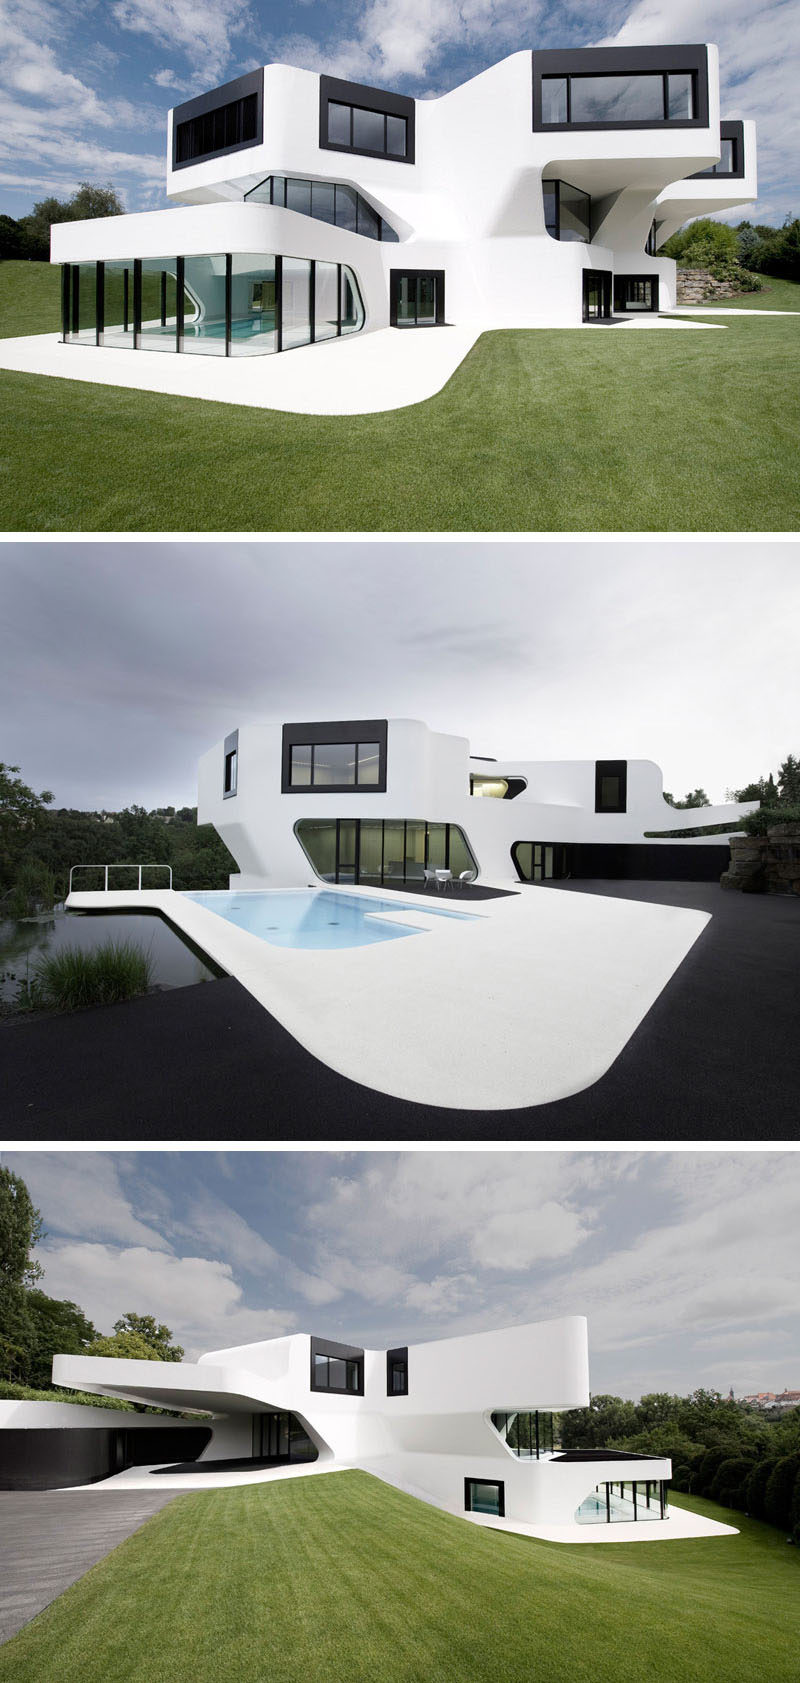 House exterior colors 11 modern white houses from around for Black and white house exterior design